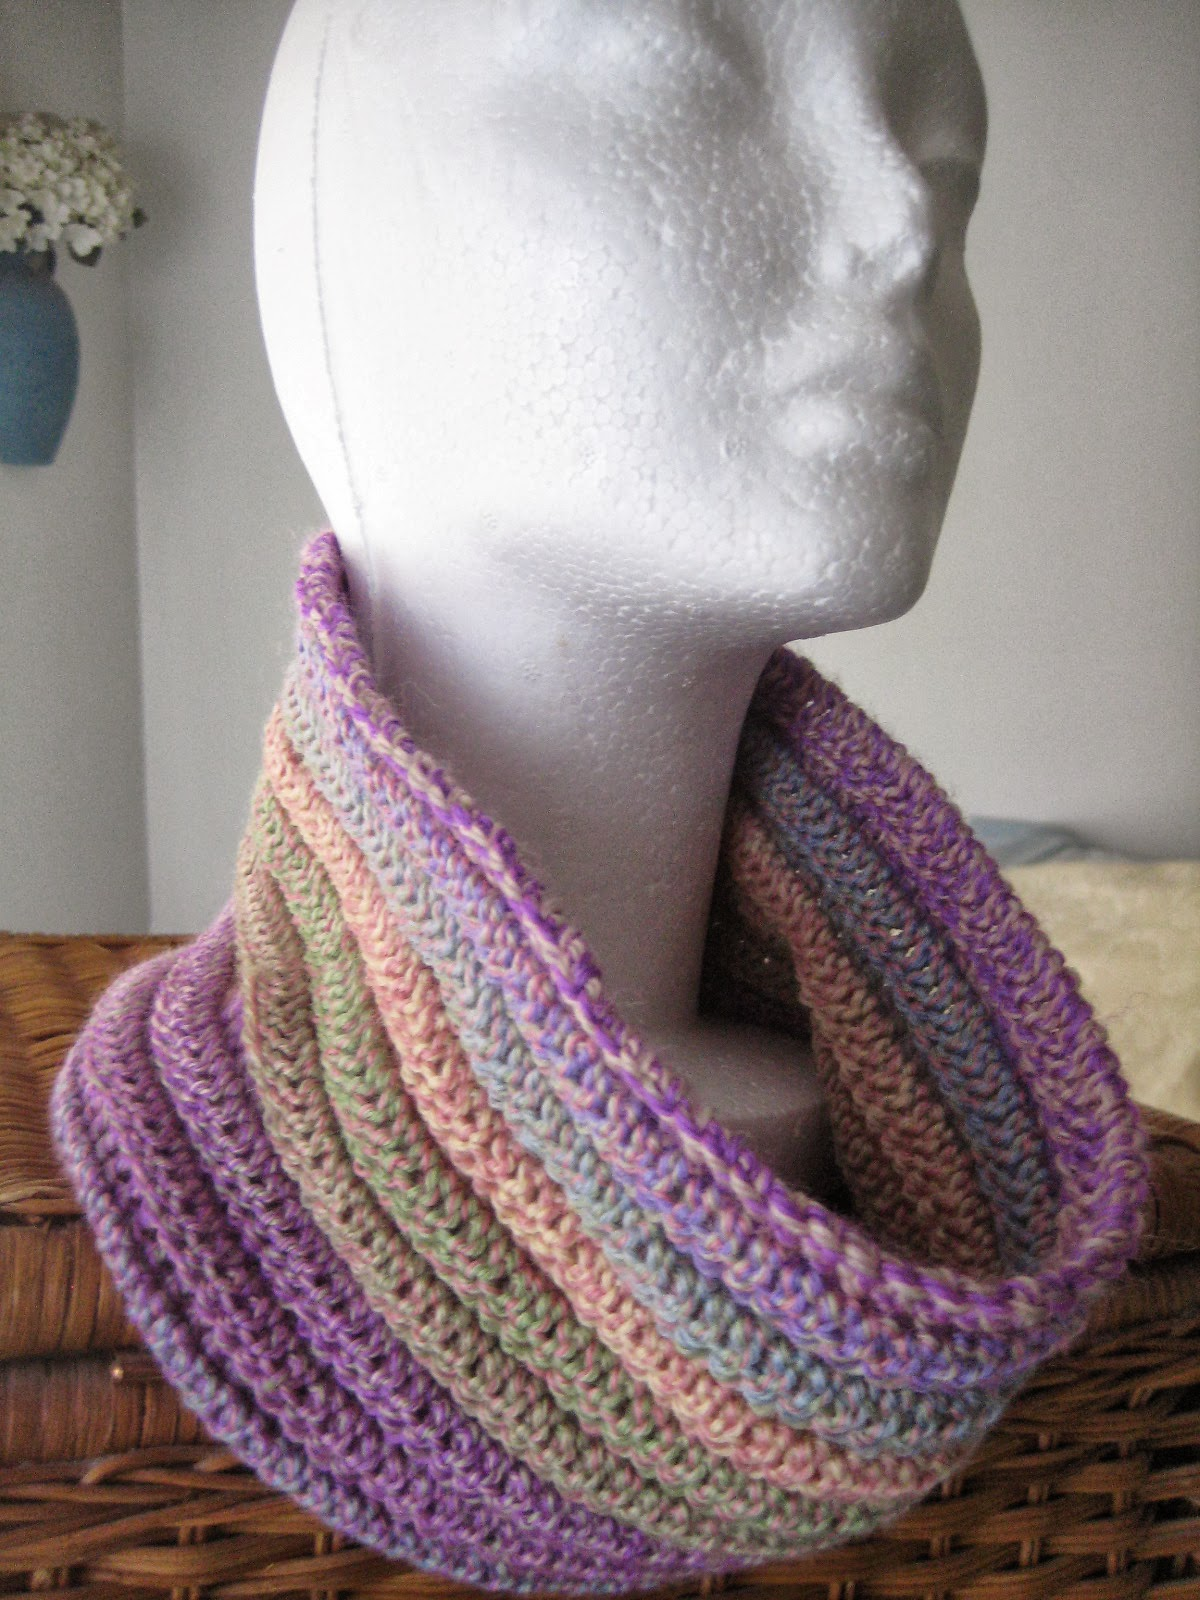 Crocheting Crazy : The Crochet Caretaker: Crazy Cowls! With a free pattern!